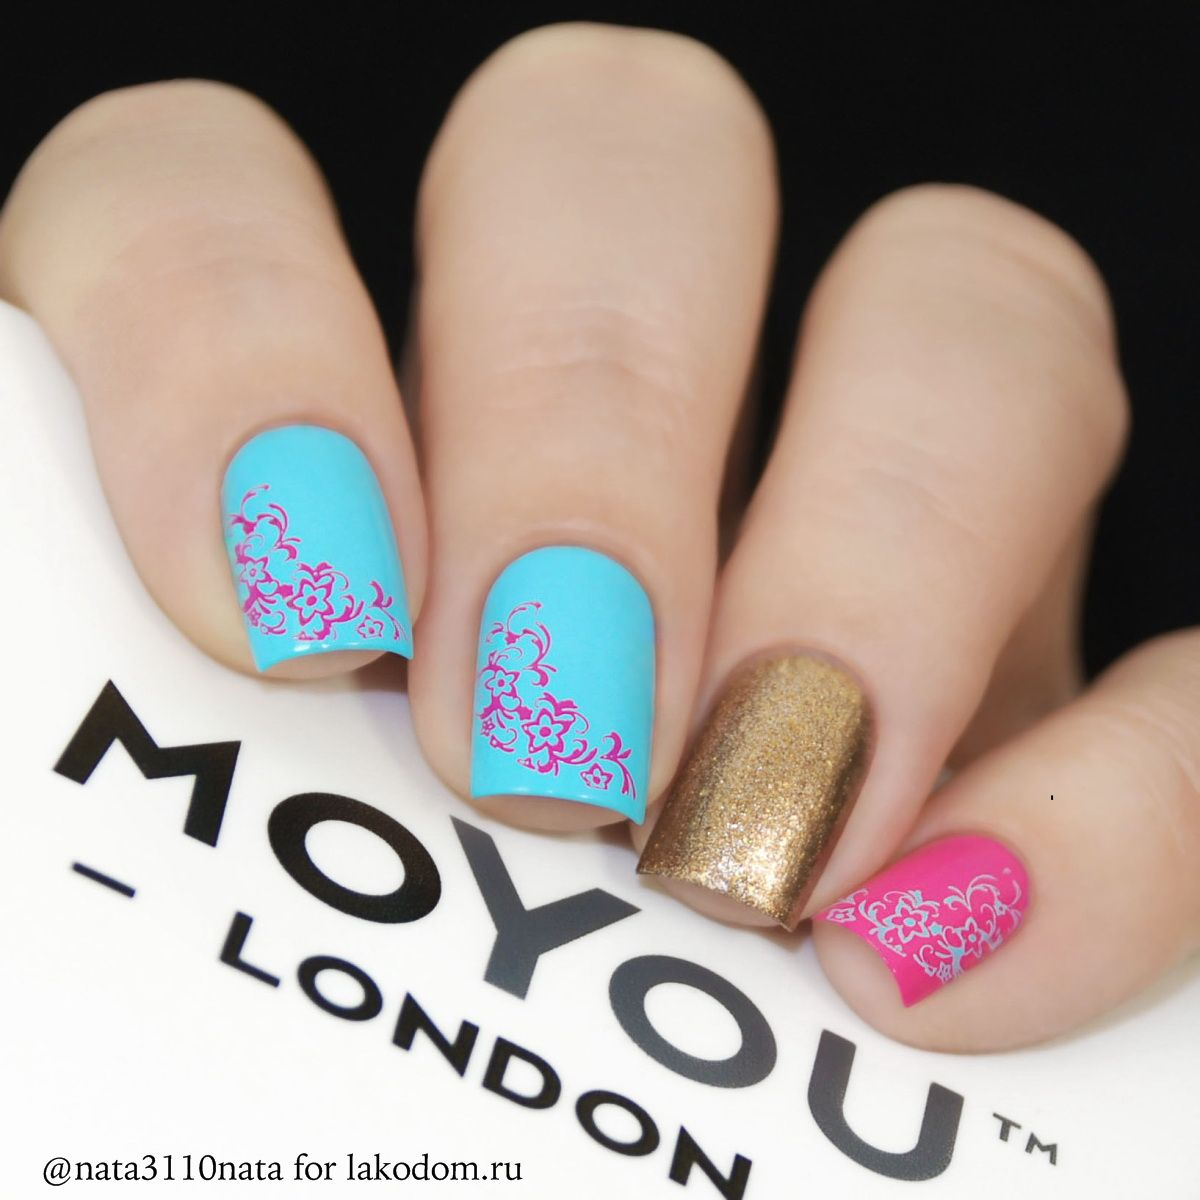 Frenchy 03   Nail stamping, Manicure and Moyou stamping